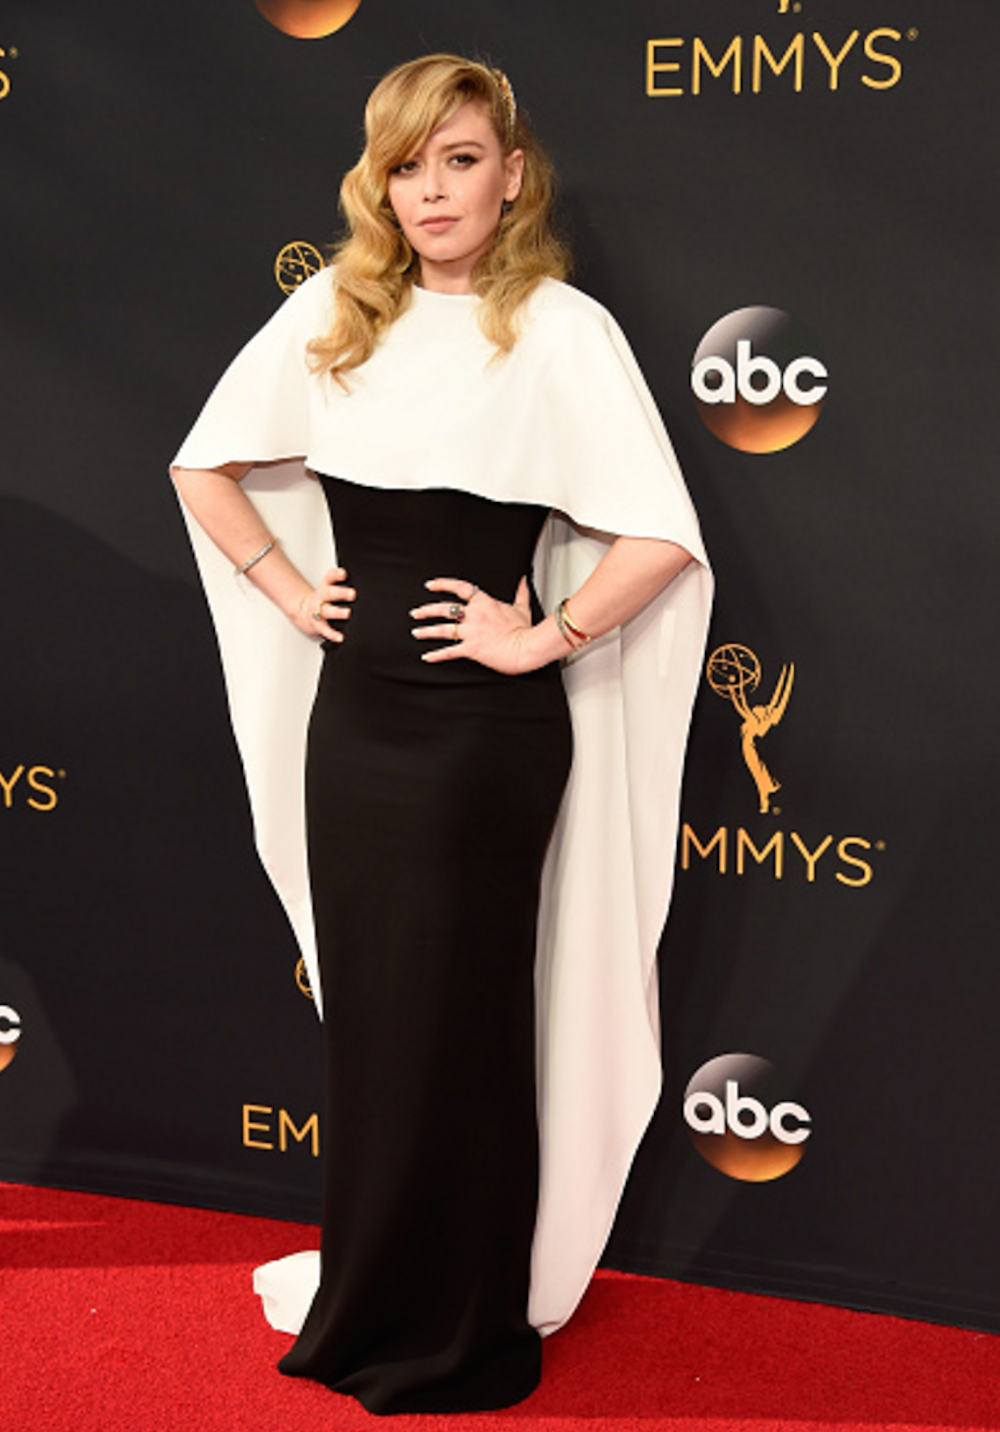 Natasha Lyonne in Sally Lapointe at the 2016 Emmy Awards. Image courtesy of Kevin Mazur/Getty.